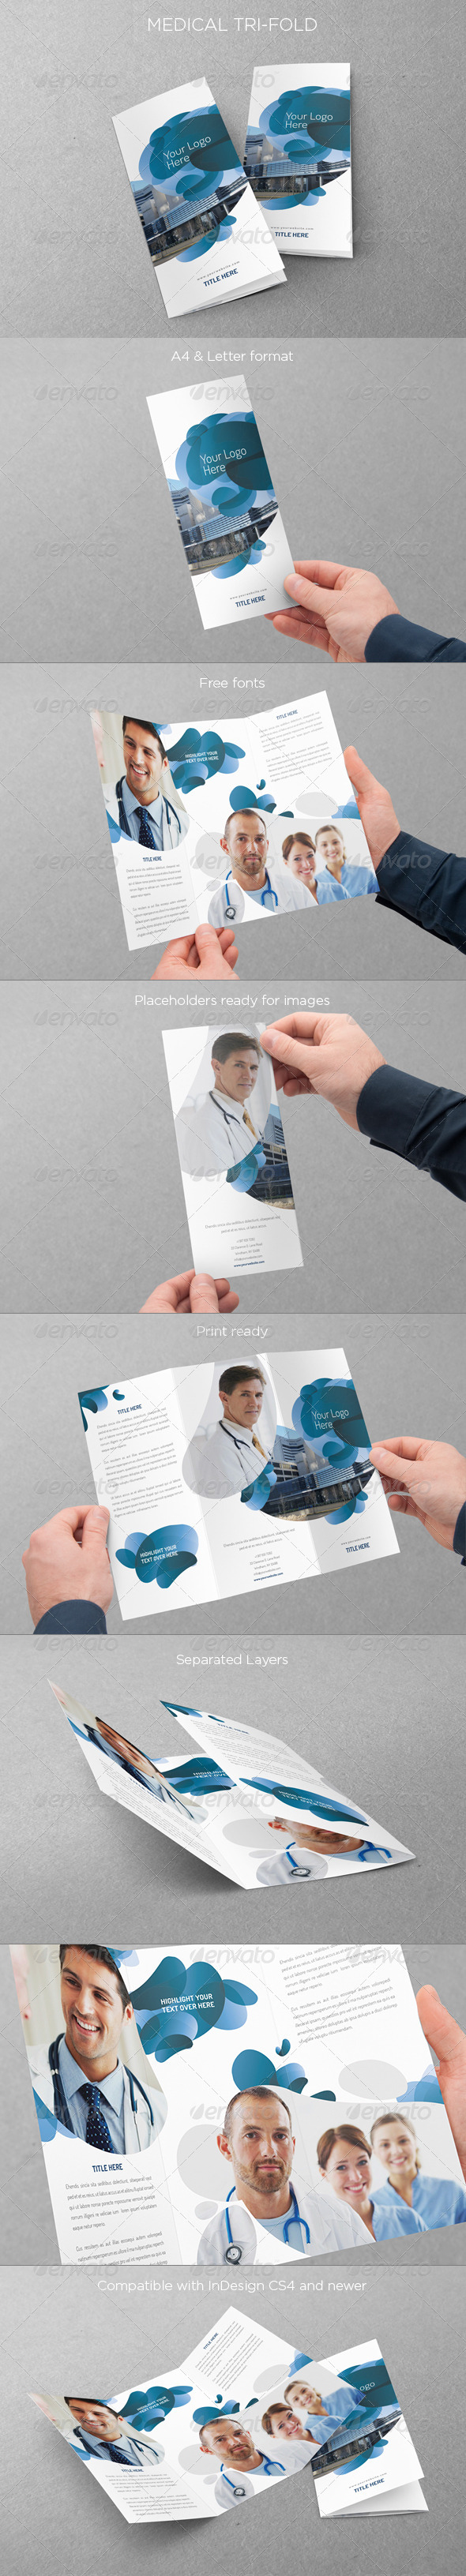 GraphicRiver Medical Trifold 5052674